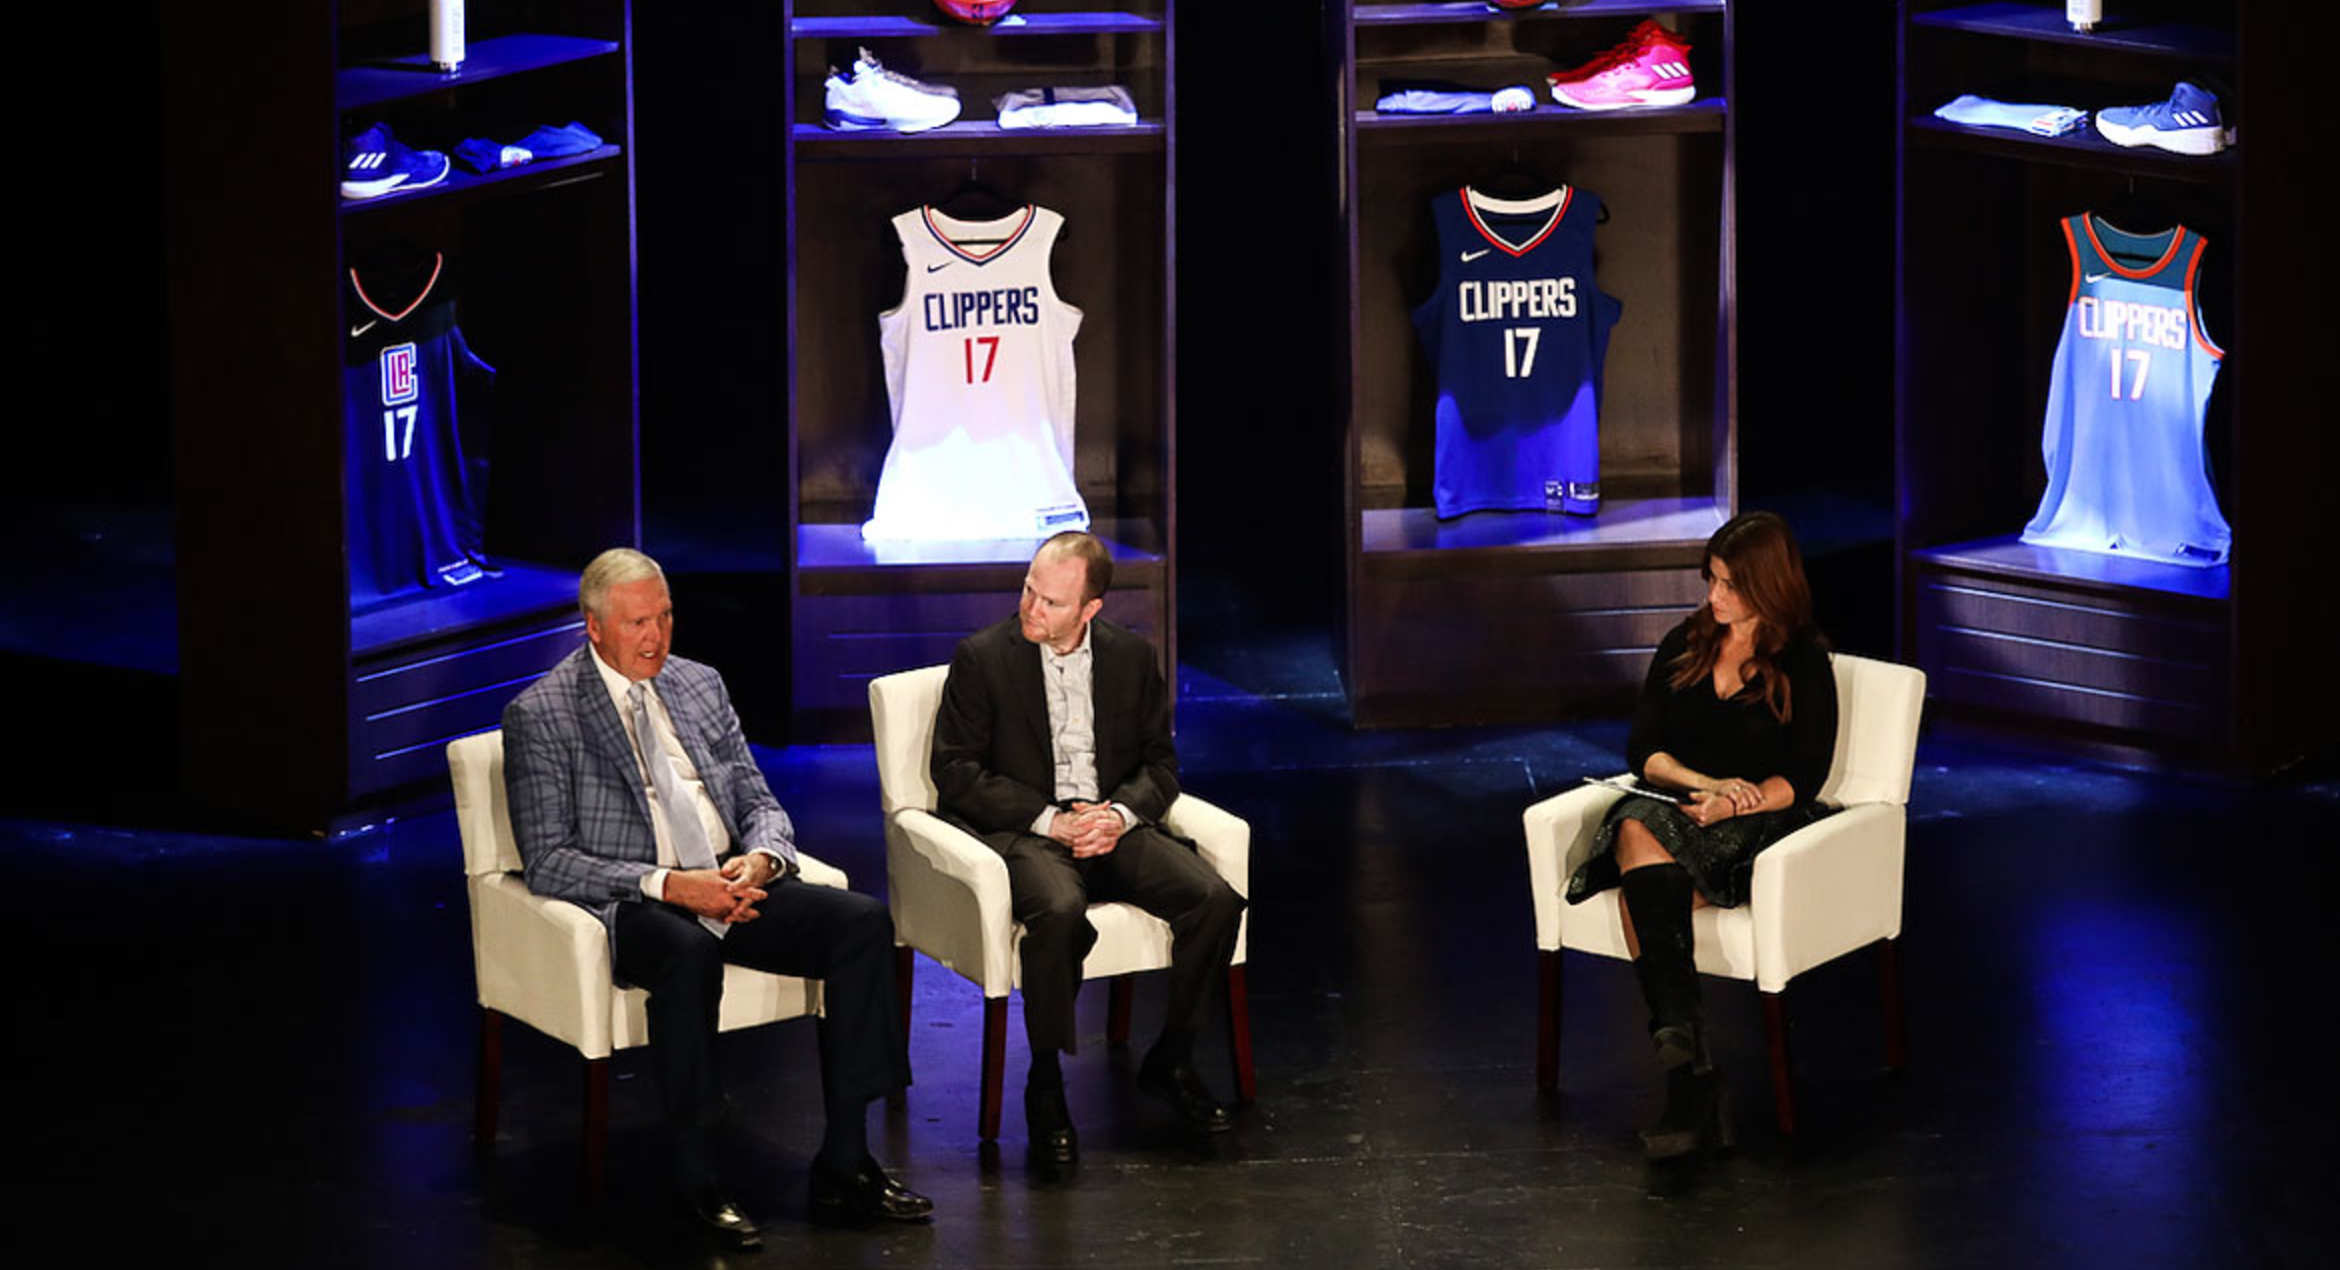 Clippers host inaugural 'Playbook' event with Frank, West